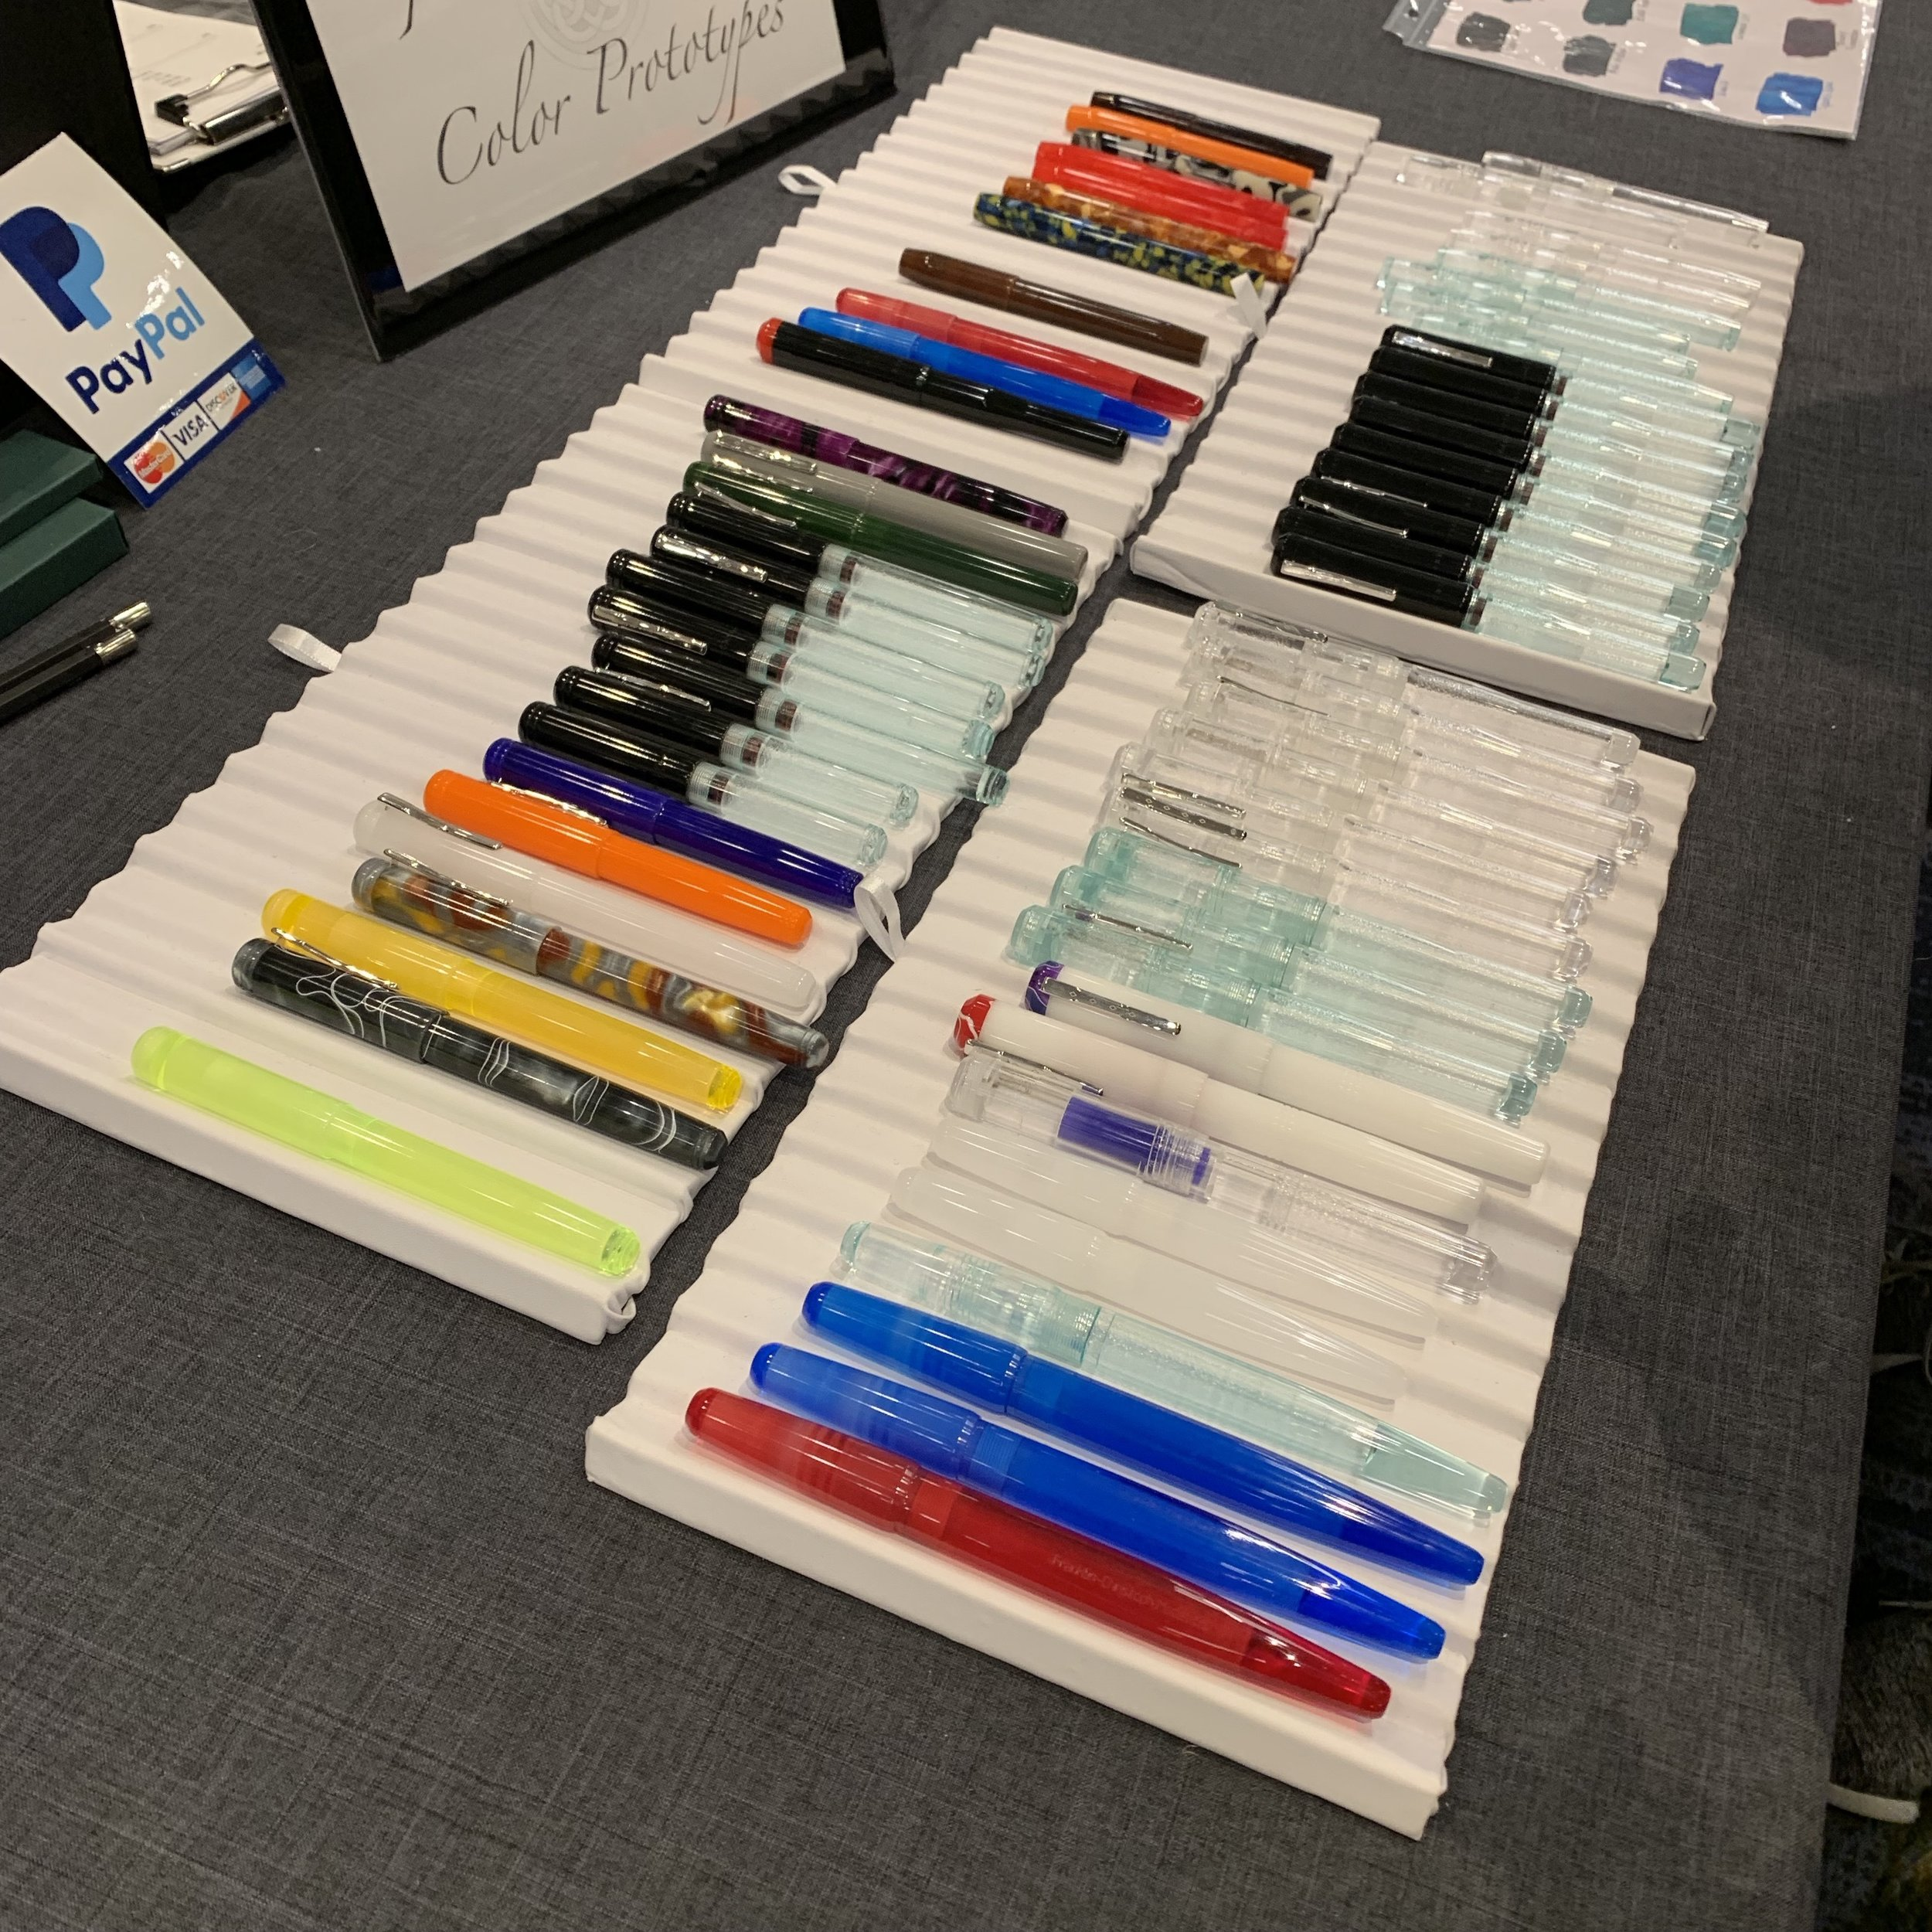 As always, Franklin-Christoph brought trays of prototypes, which went quickly each morning.